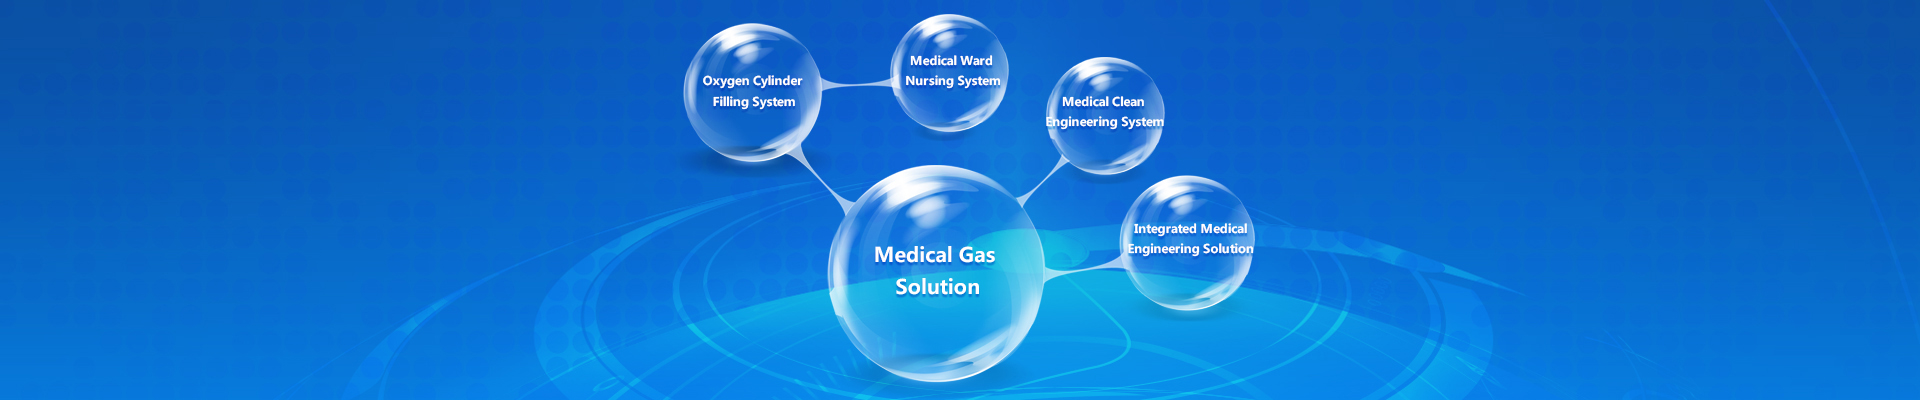 Product-Medical Gas and Engineering Solution